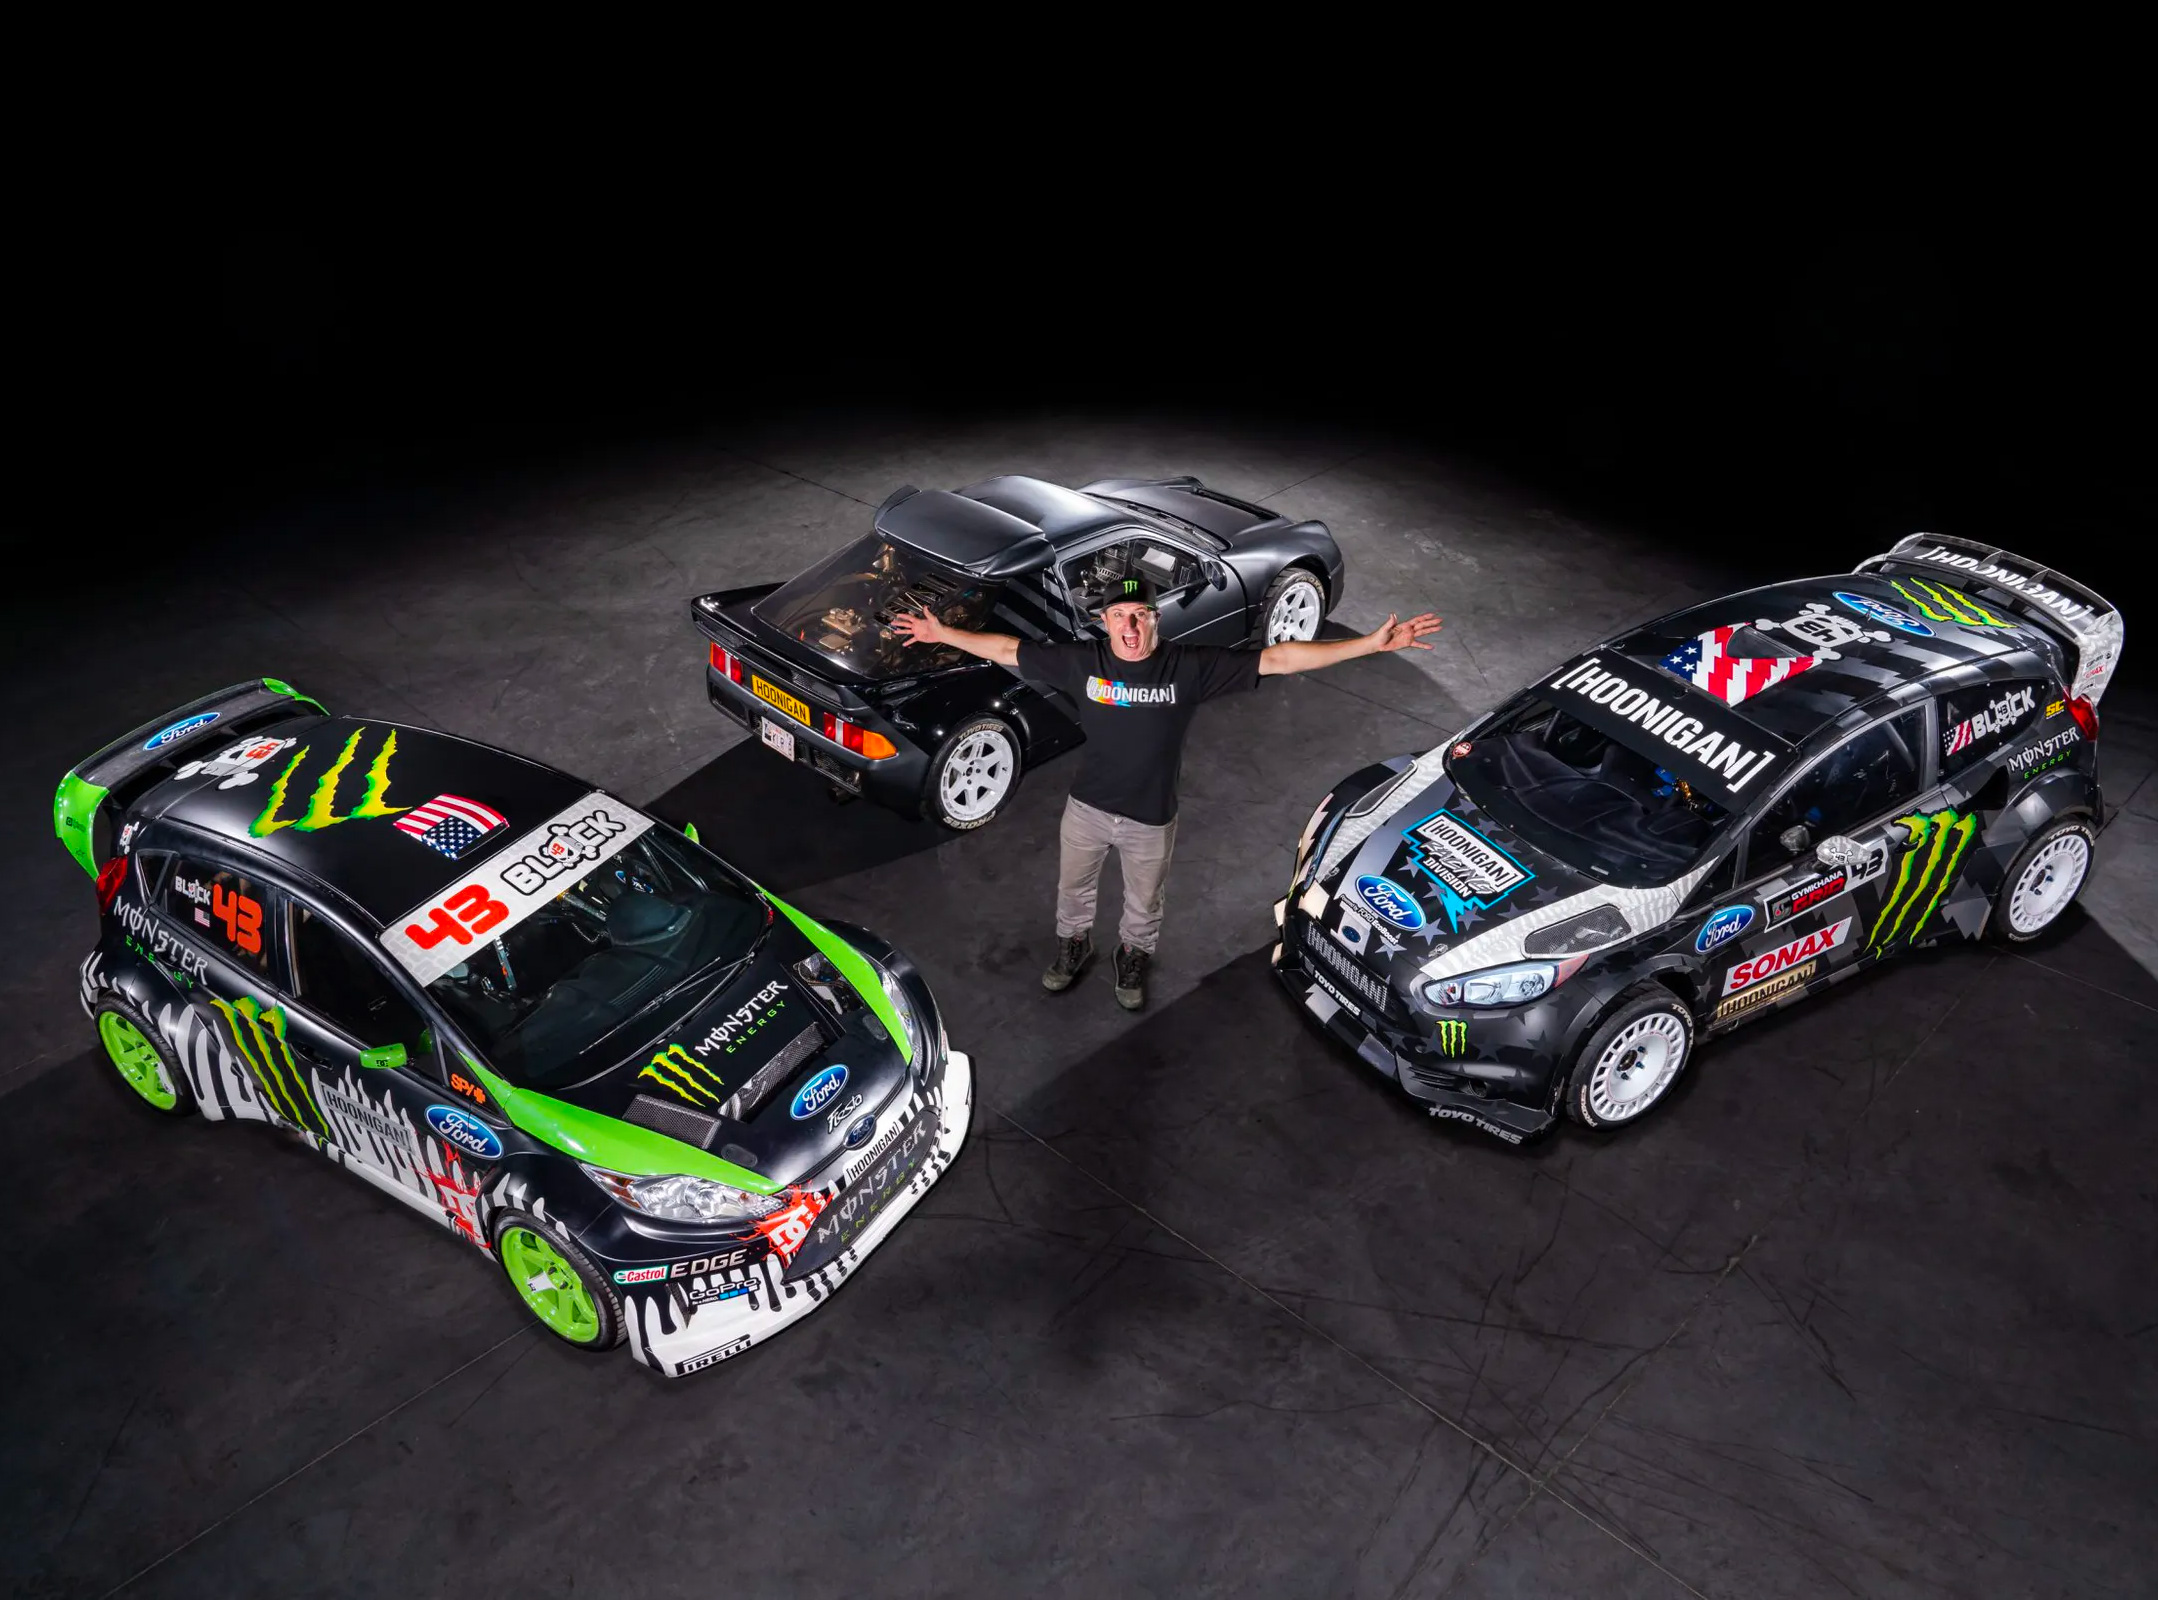 Live Out Your Drifting Dreams with a Ken Block Car at werd.com